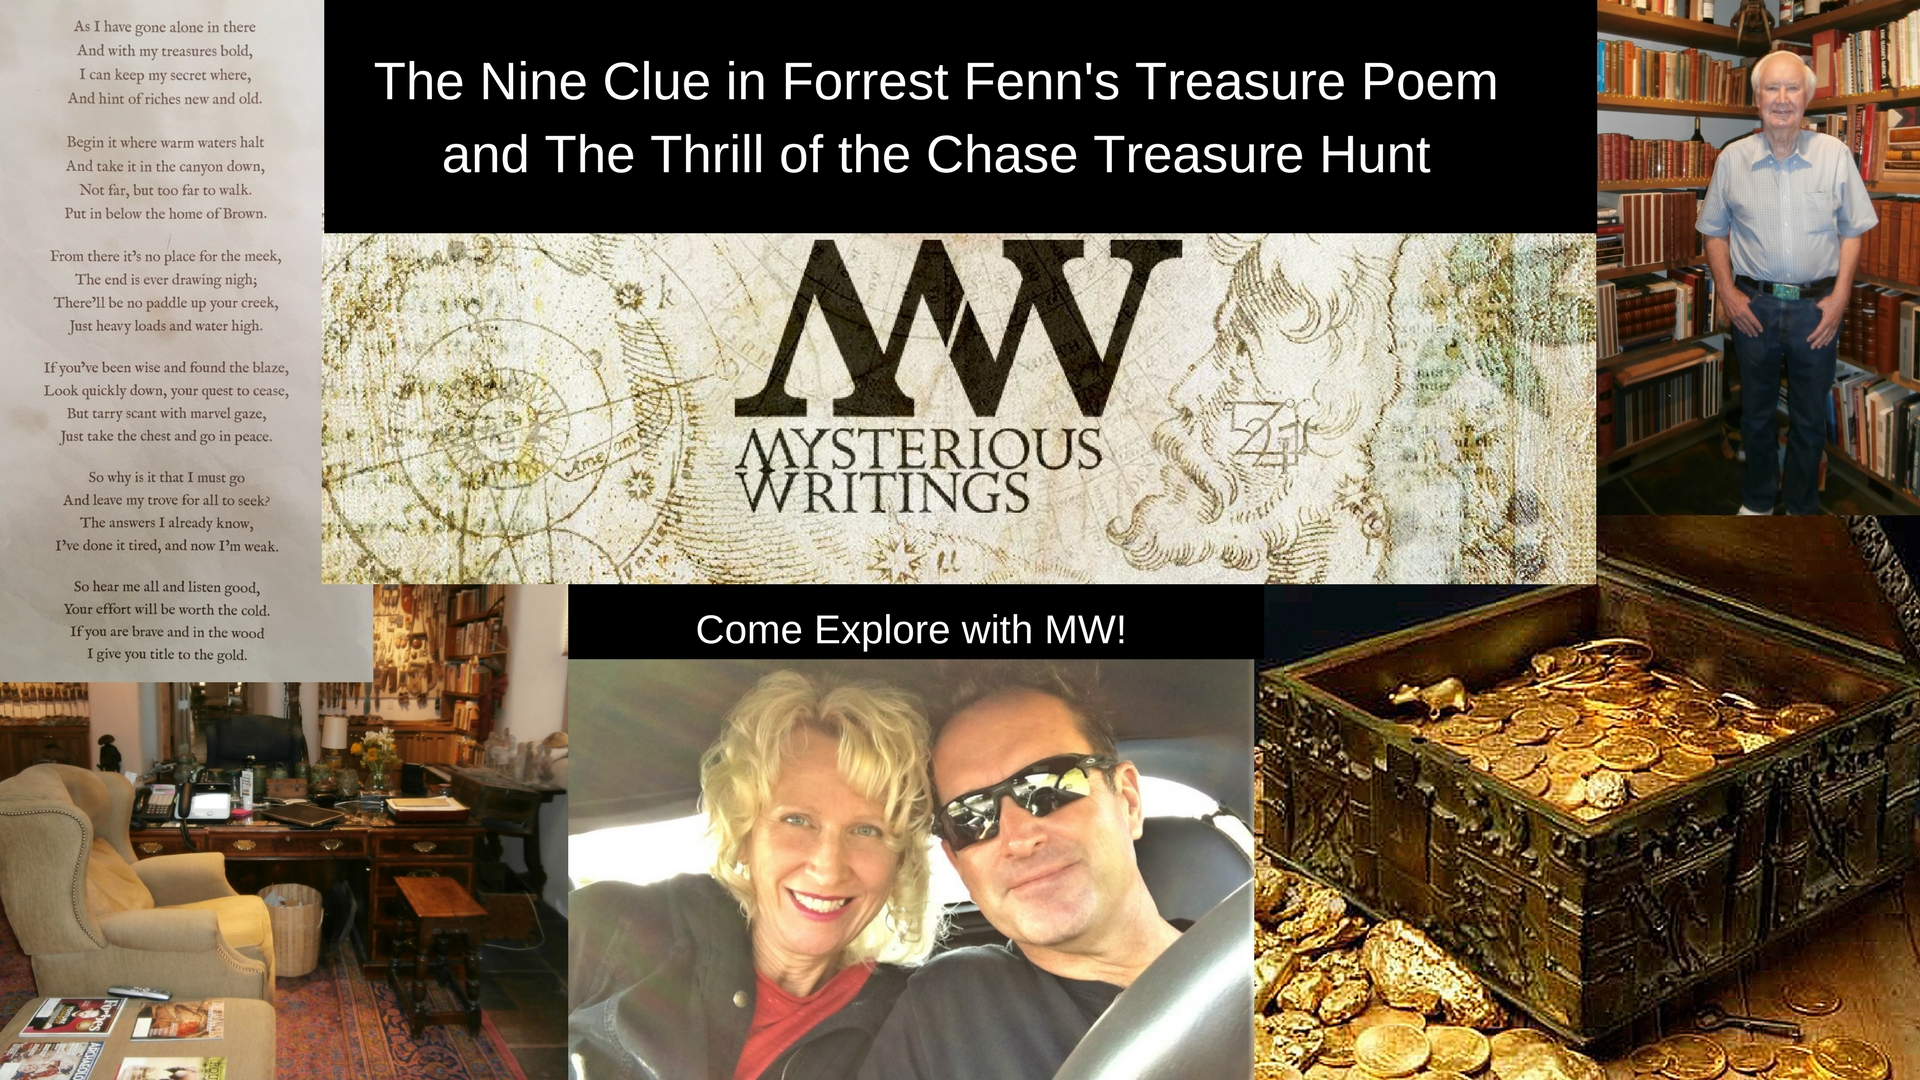 The Nine Clues in Forrest Fenn's Treasure Poem and The Thrill of the